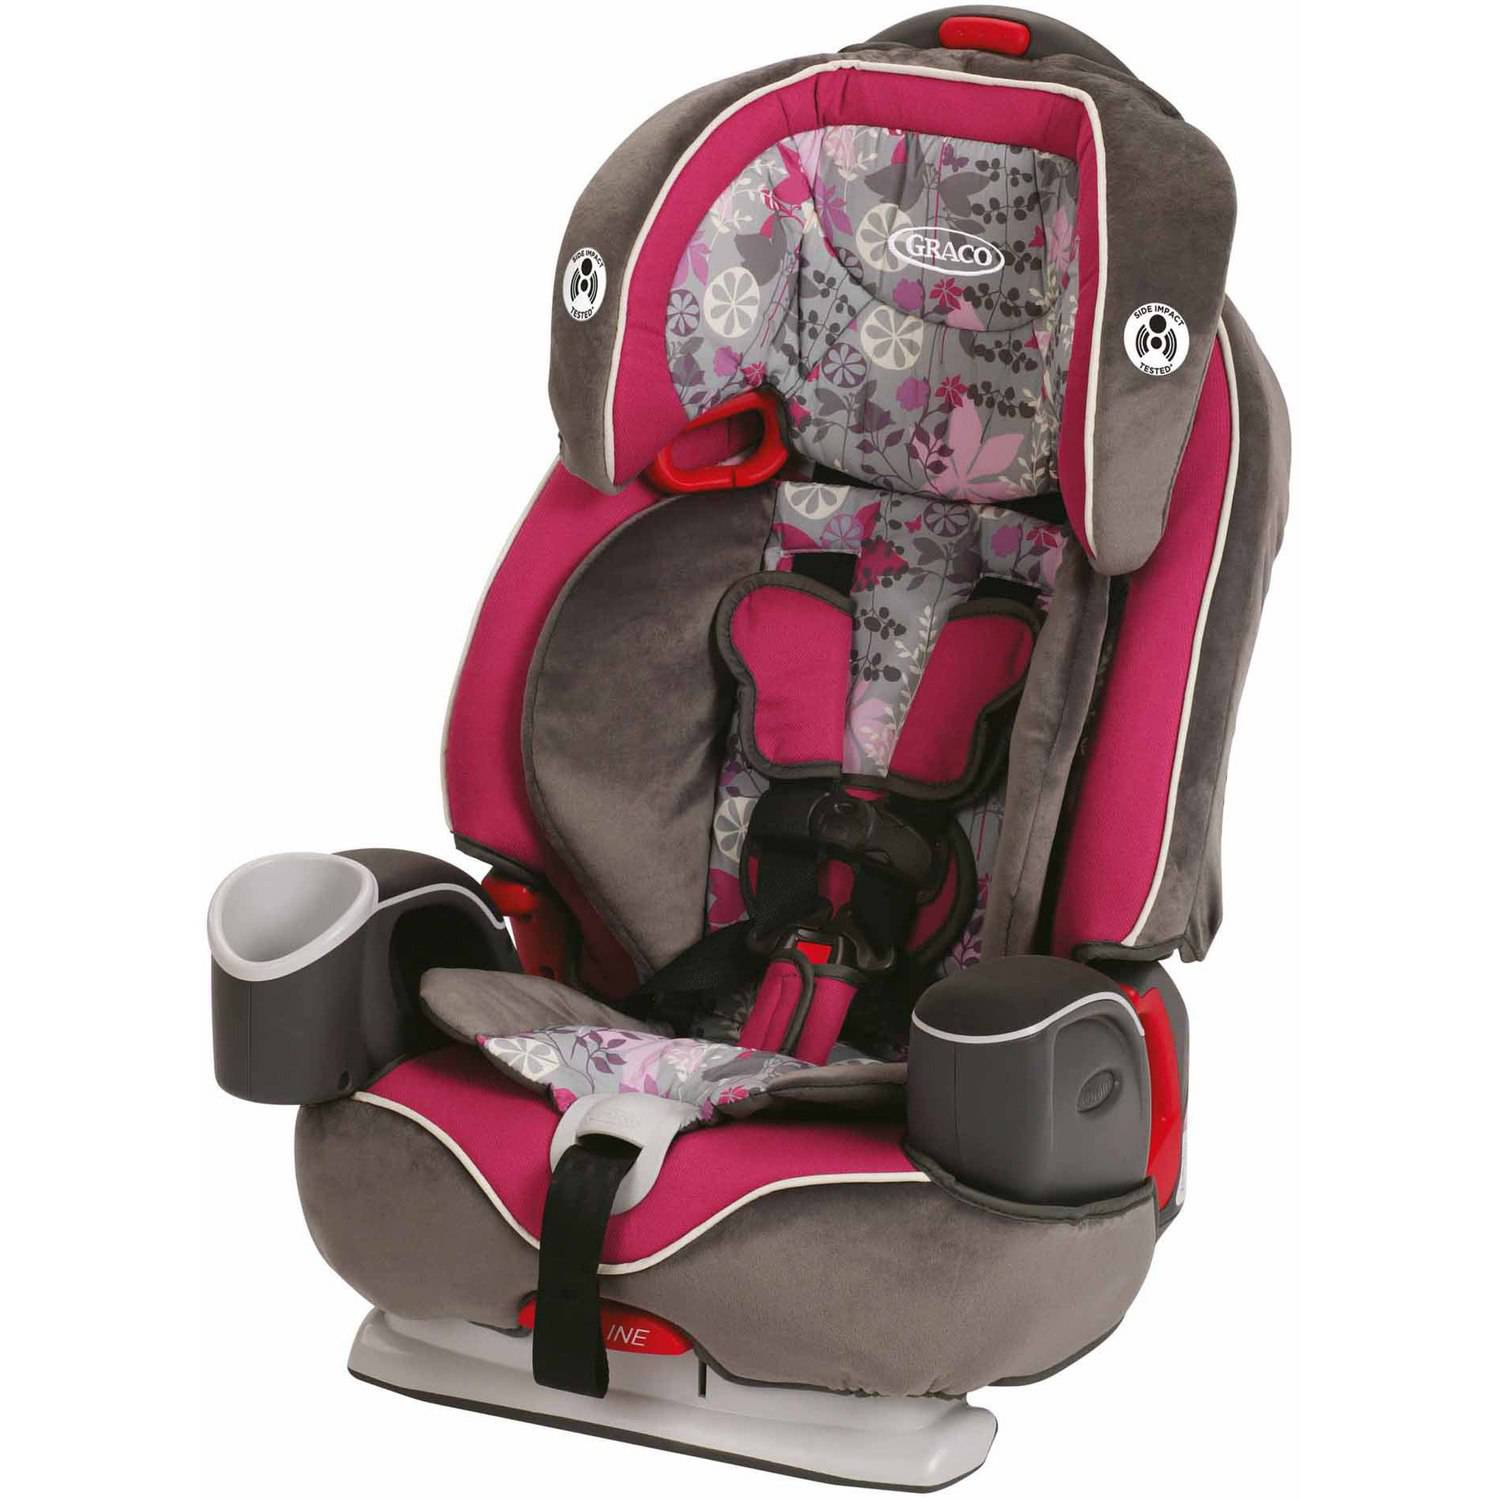 Graco Nautilus 3-in-1 Harness Booster Car Seat, Bethany - Walmart.com